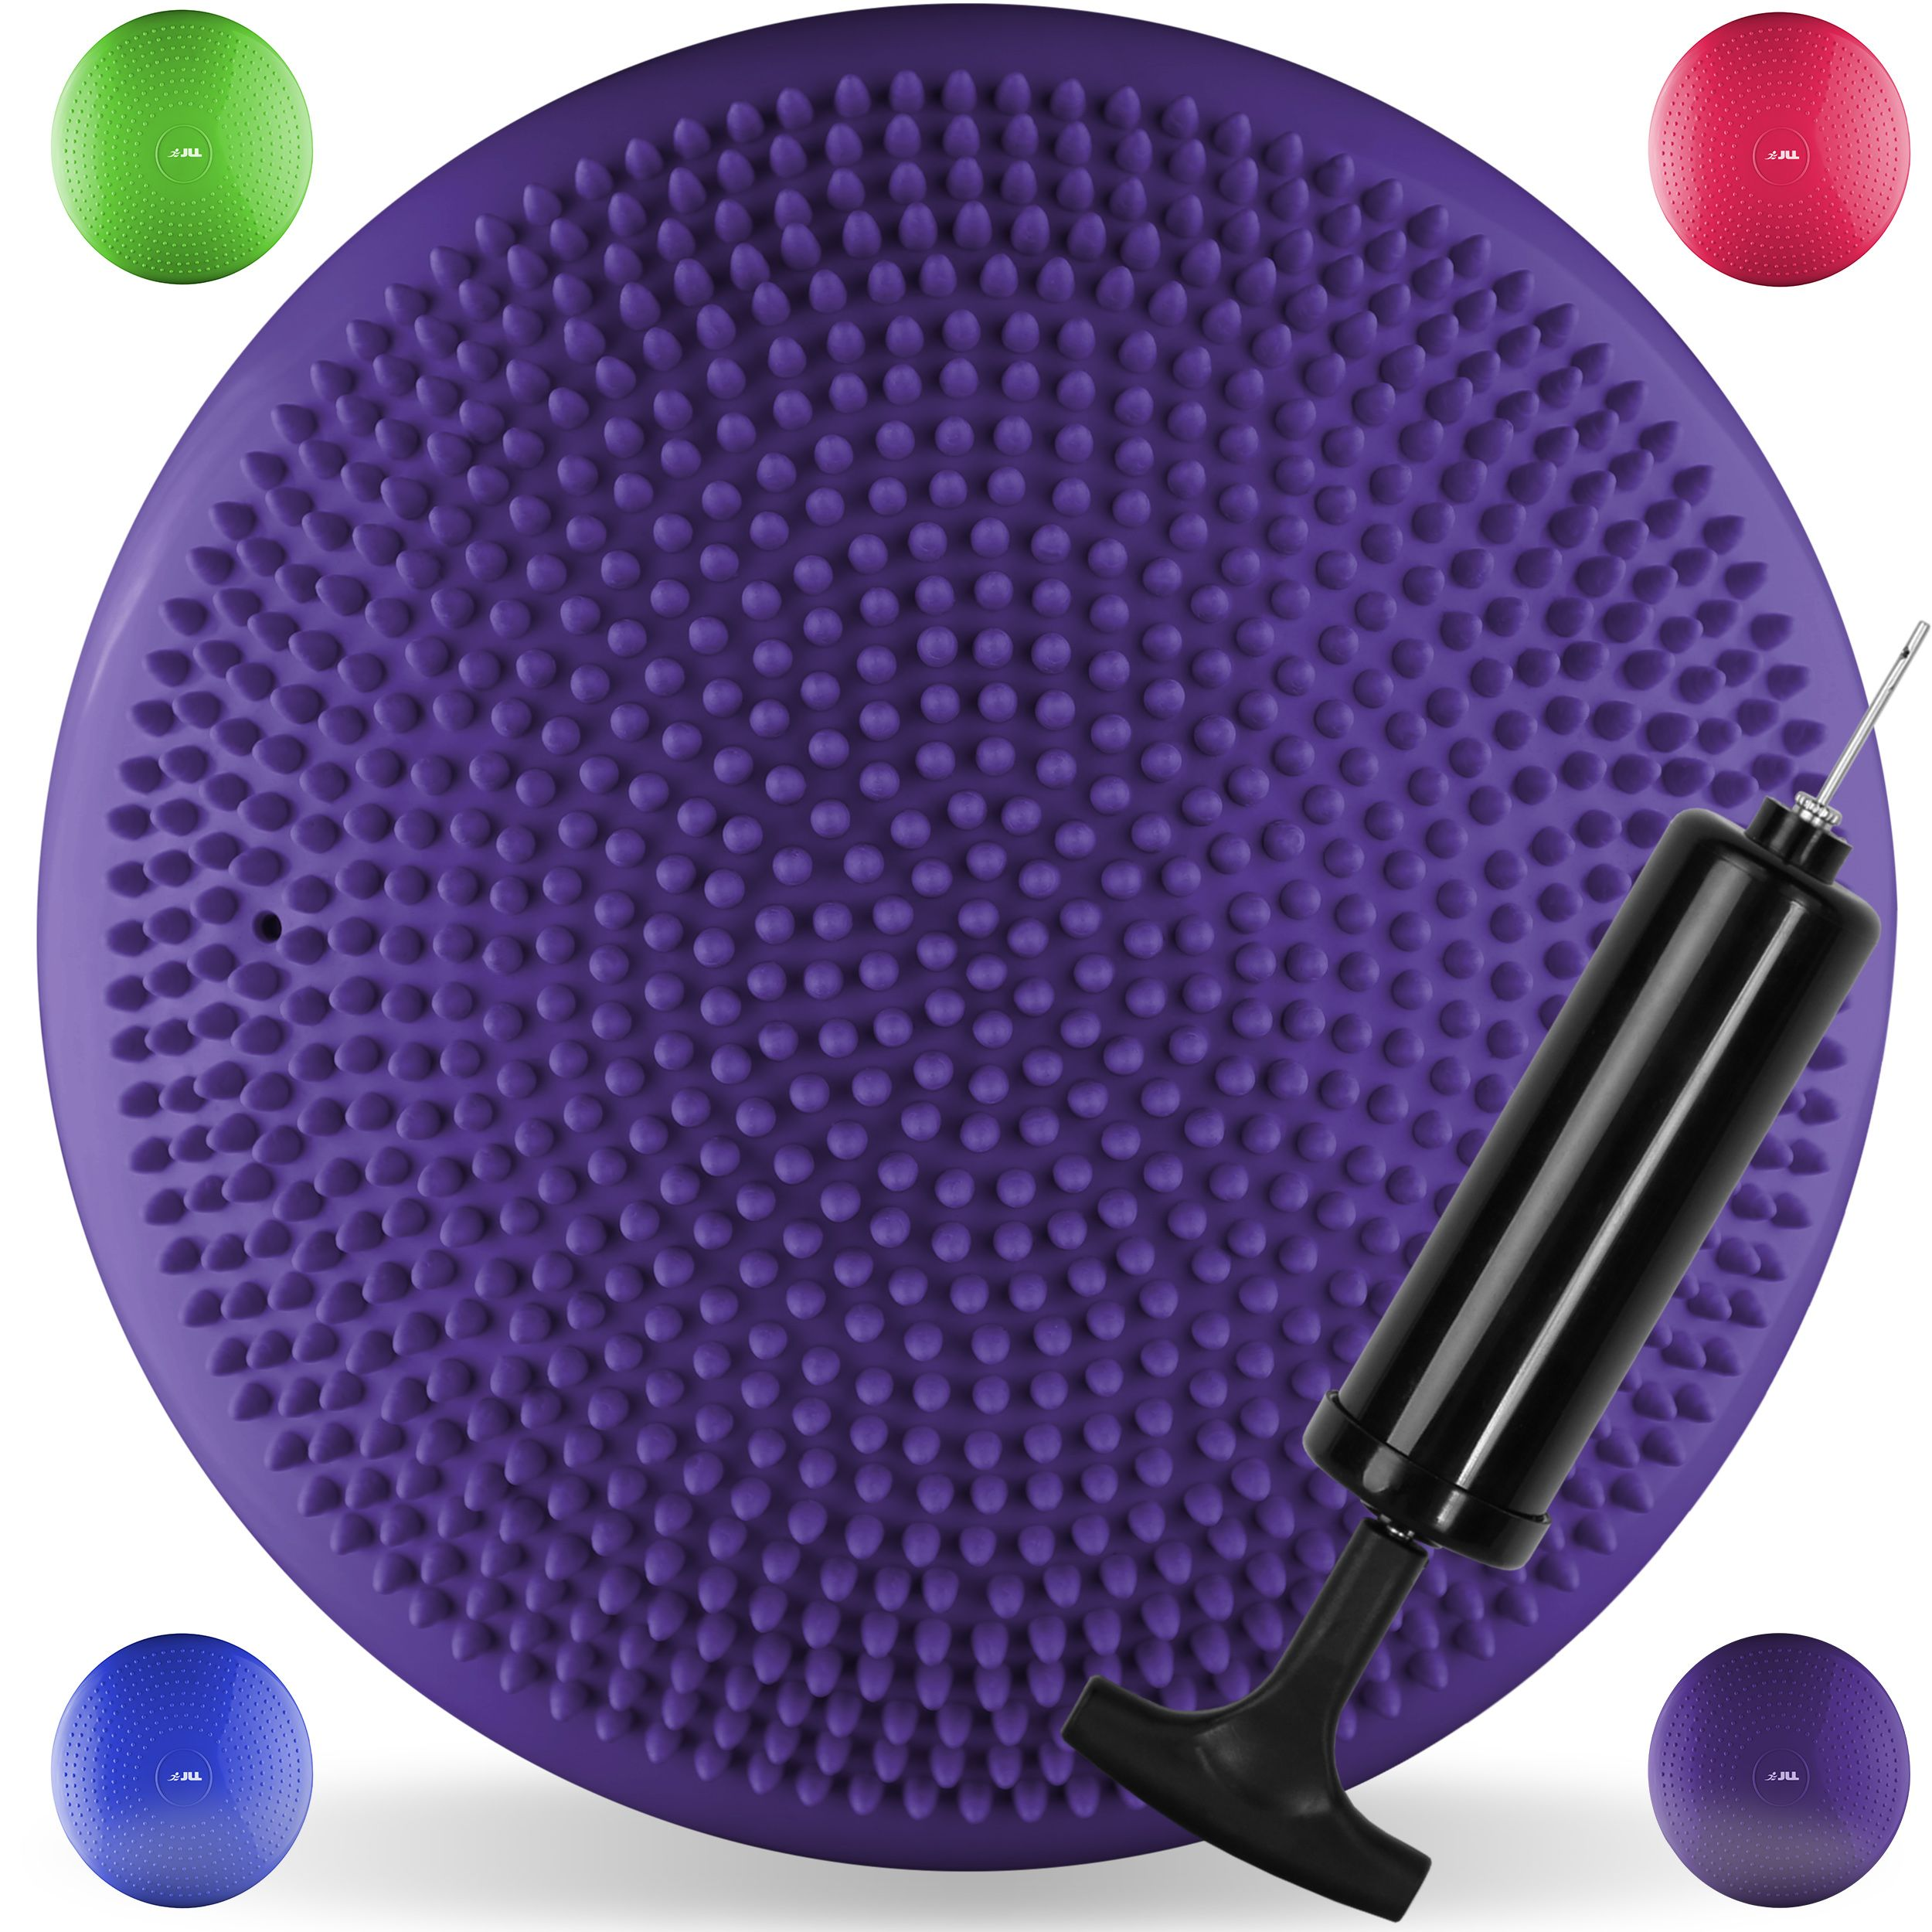 Yoga Mats Yoga Pilates Chair Massage Inflatable Cushion Barbed Massage Fitness Balance Mat With Inflatable Tube Catalogues Will Be Sent Upon Request